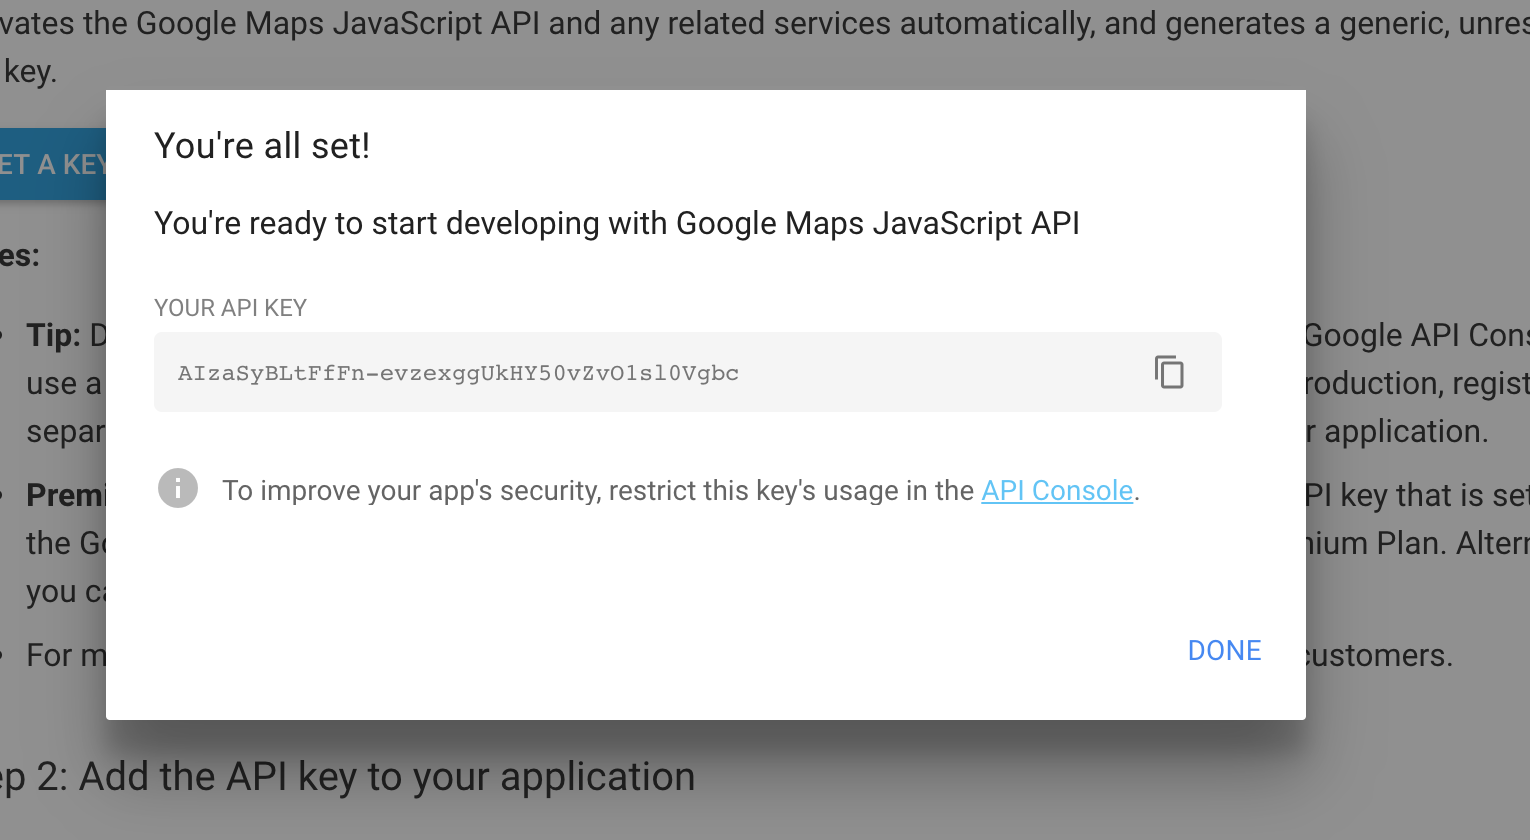 How to get a key from Google Maps JavaScript API - Quick